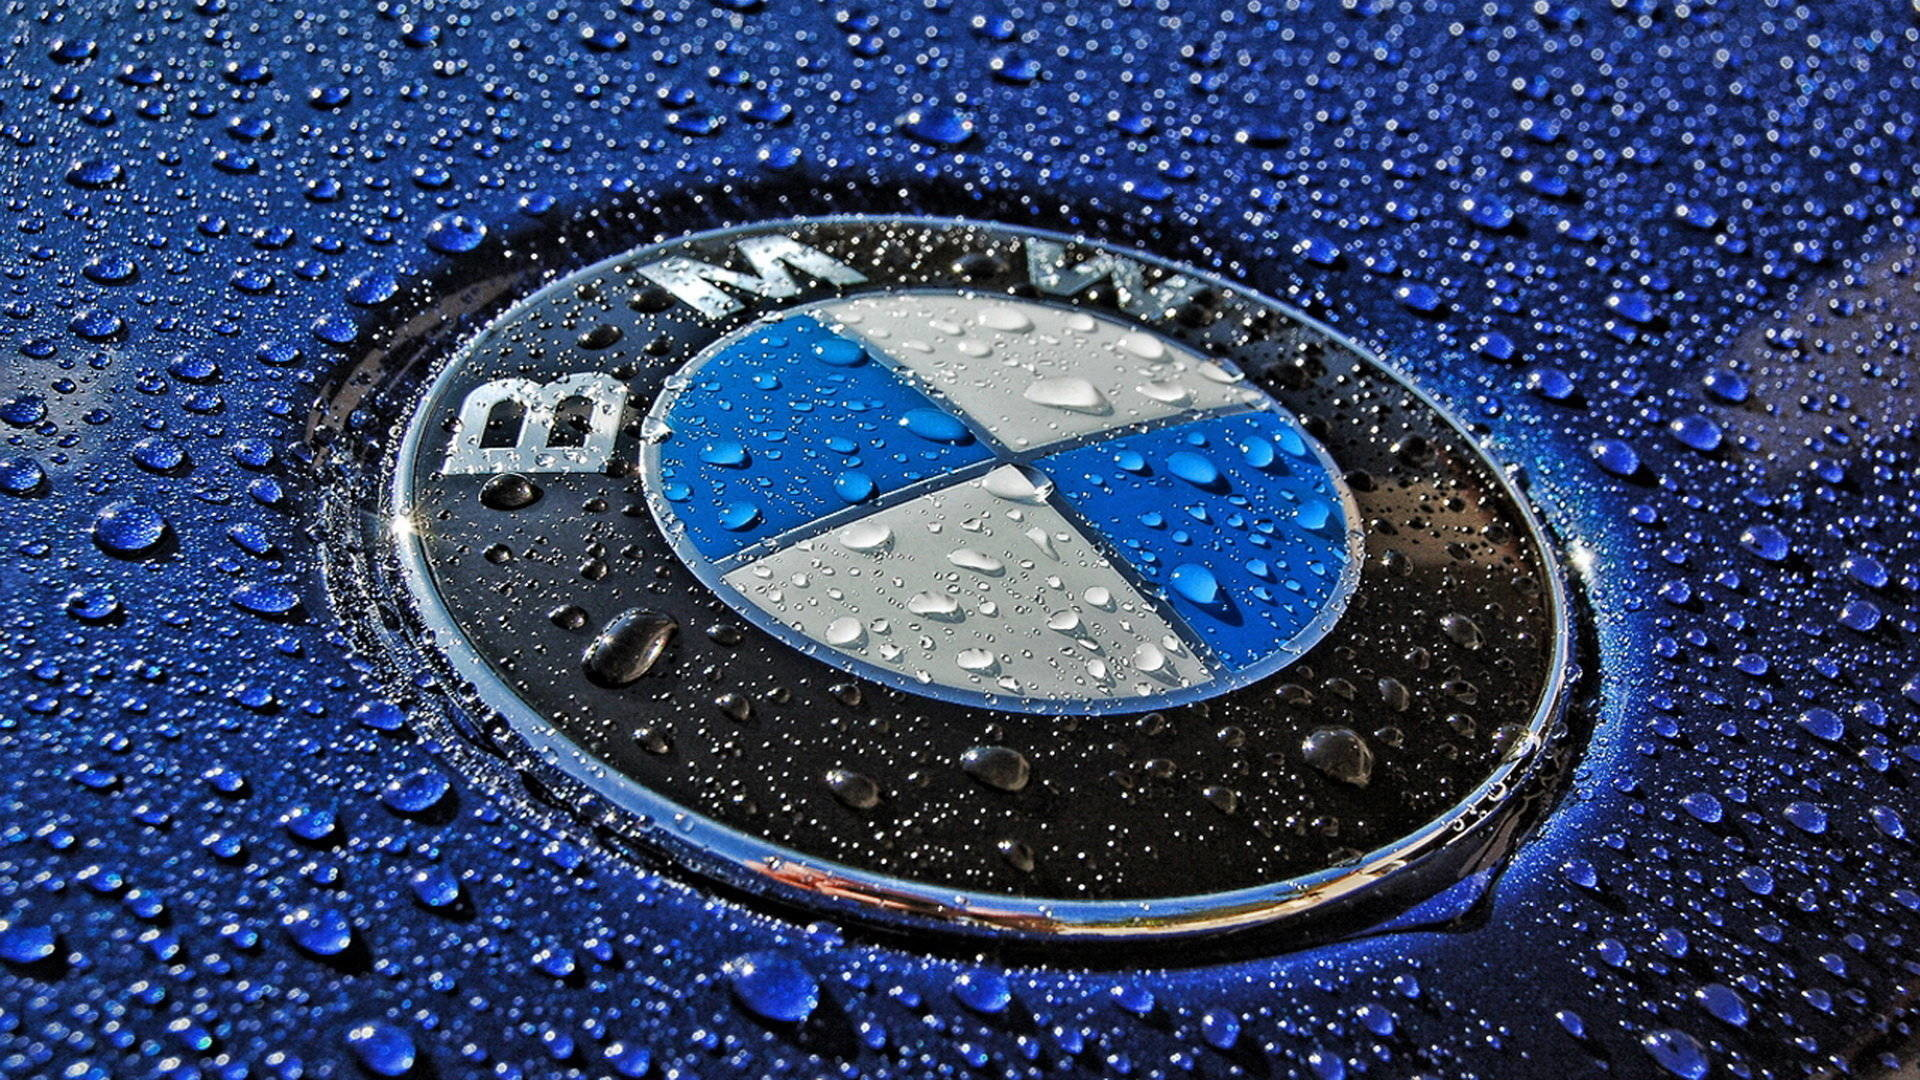 1920x1080 BMW Logo Wallpaper HD 1080p Wallpaper